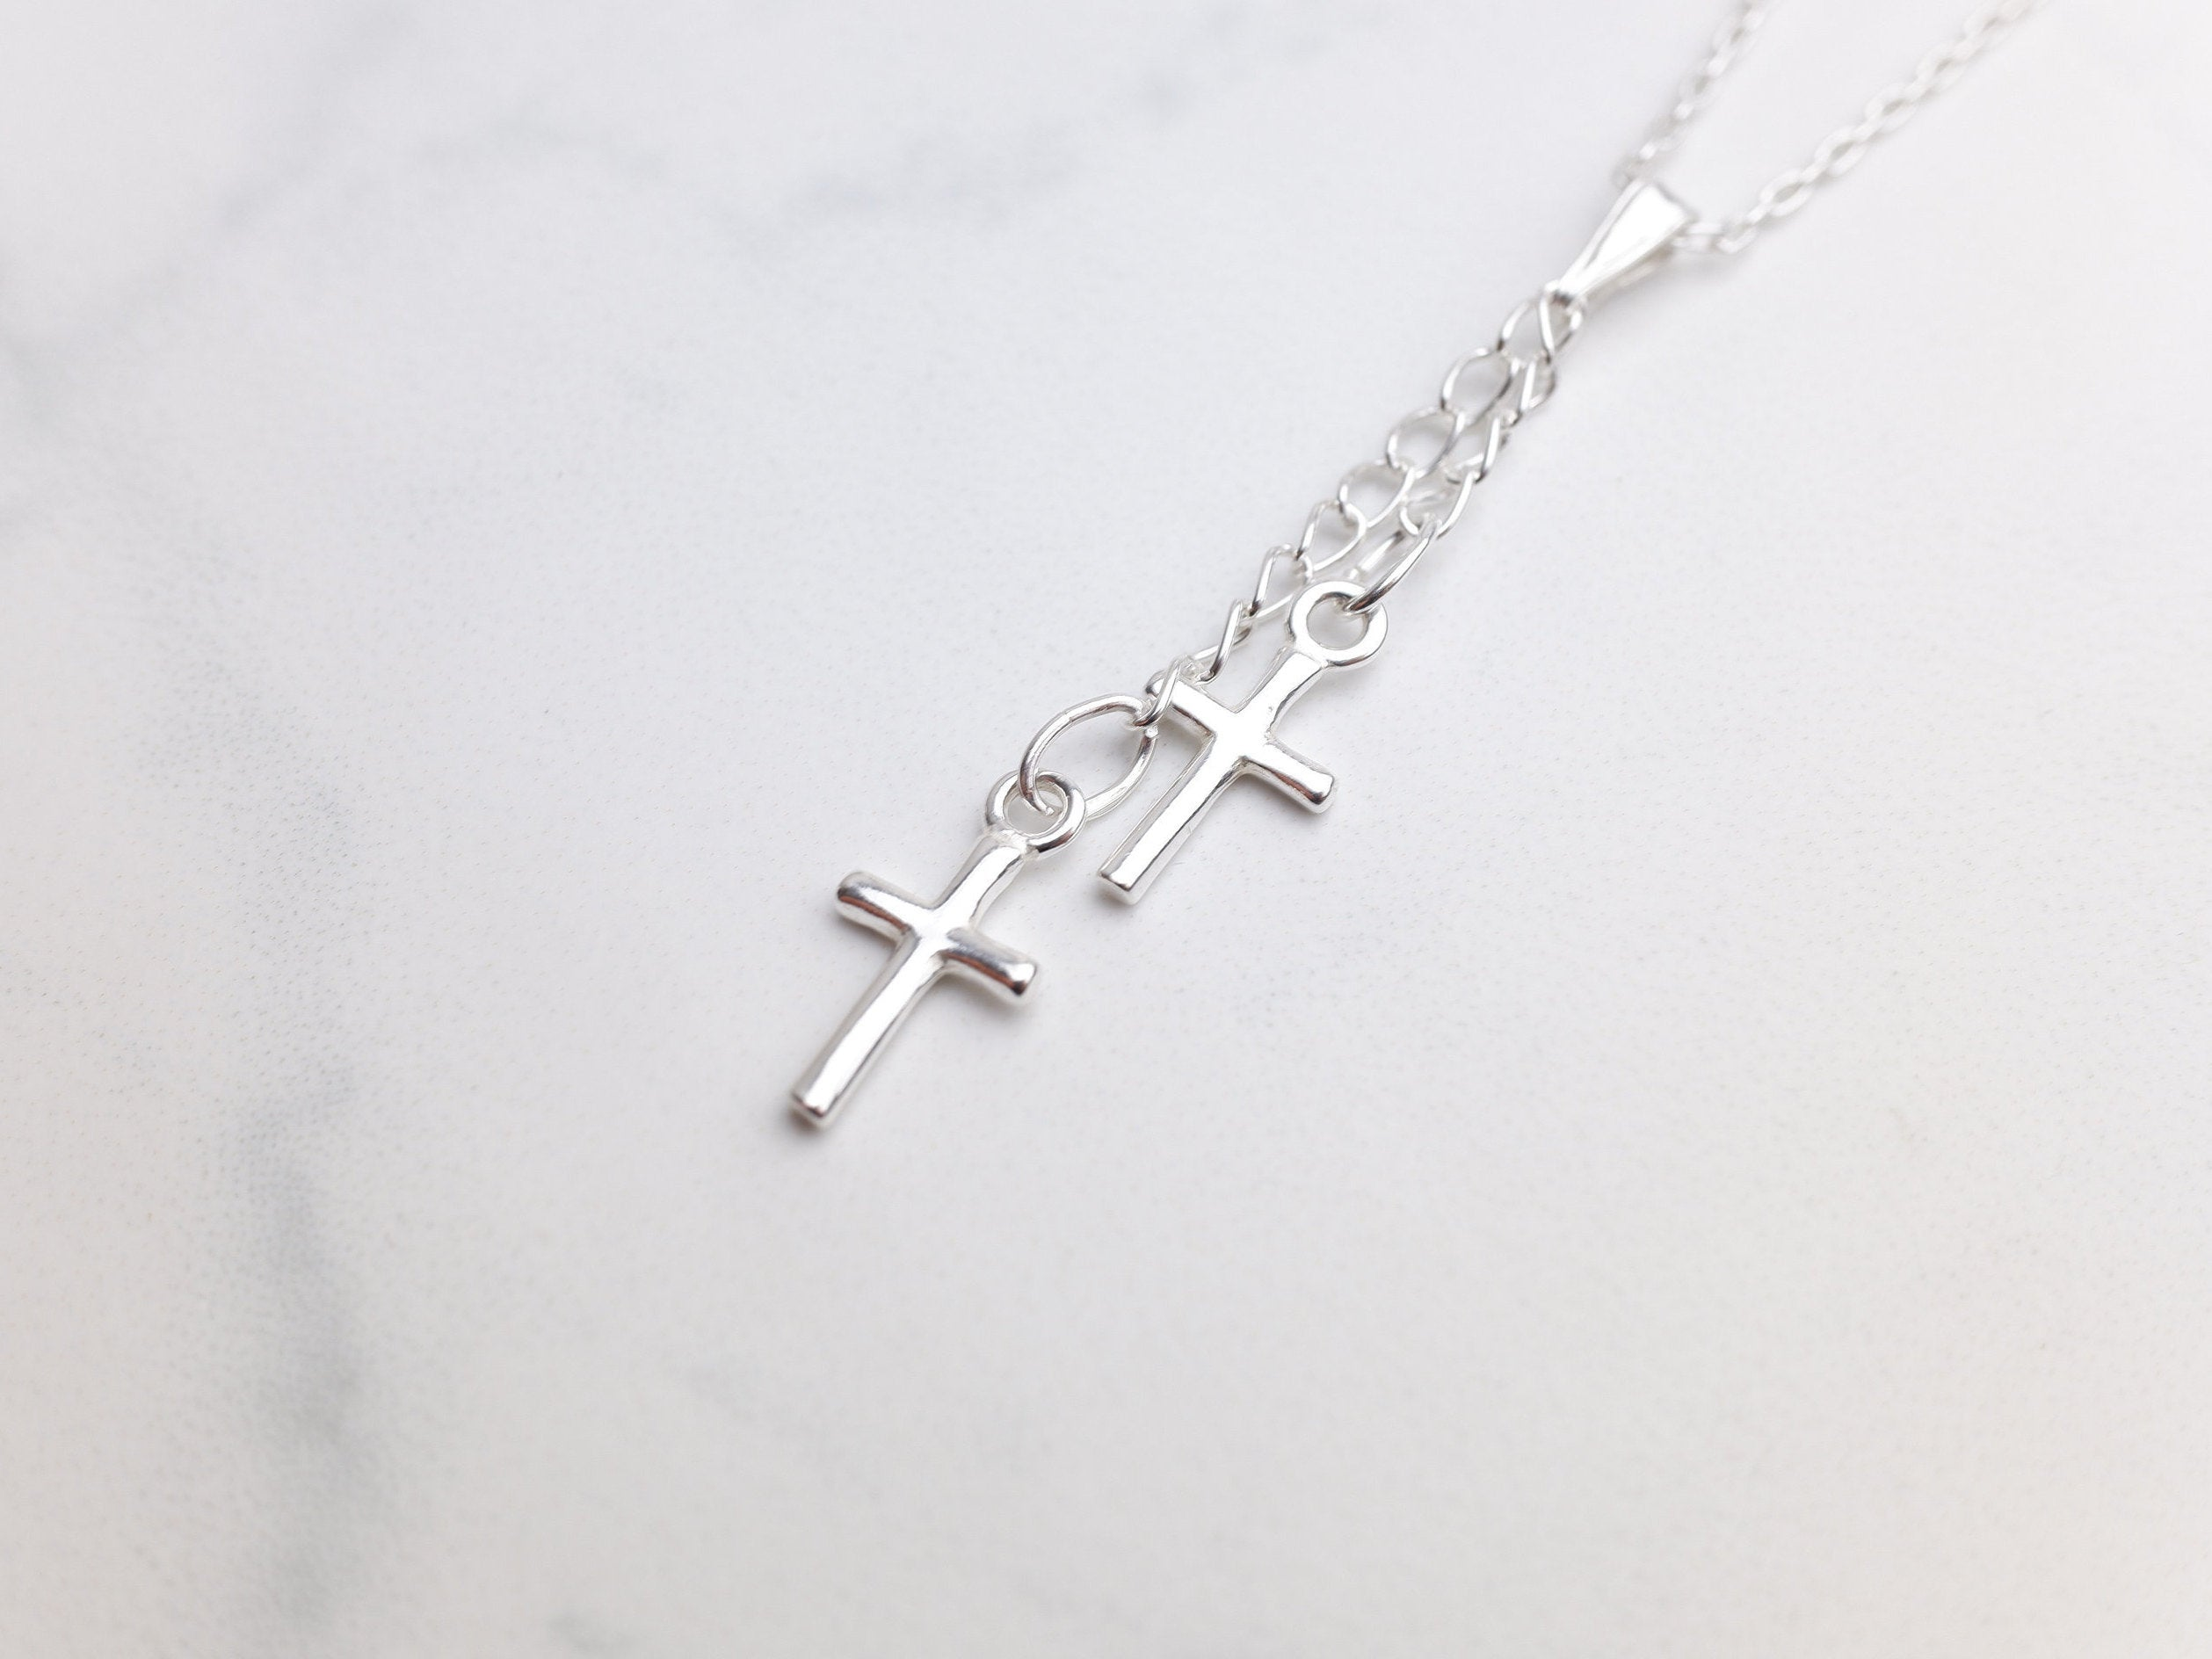 Sterling Silver Double Cross Charm Pendant Necklace - Sterling Silver Cable Chain - Christmas Jewellery